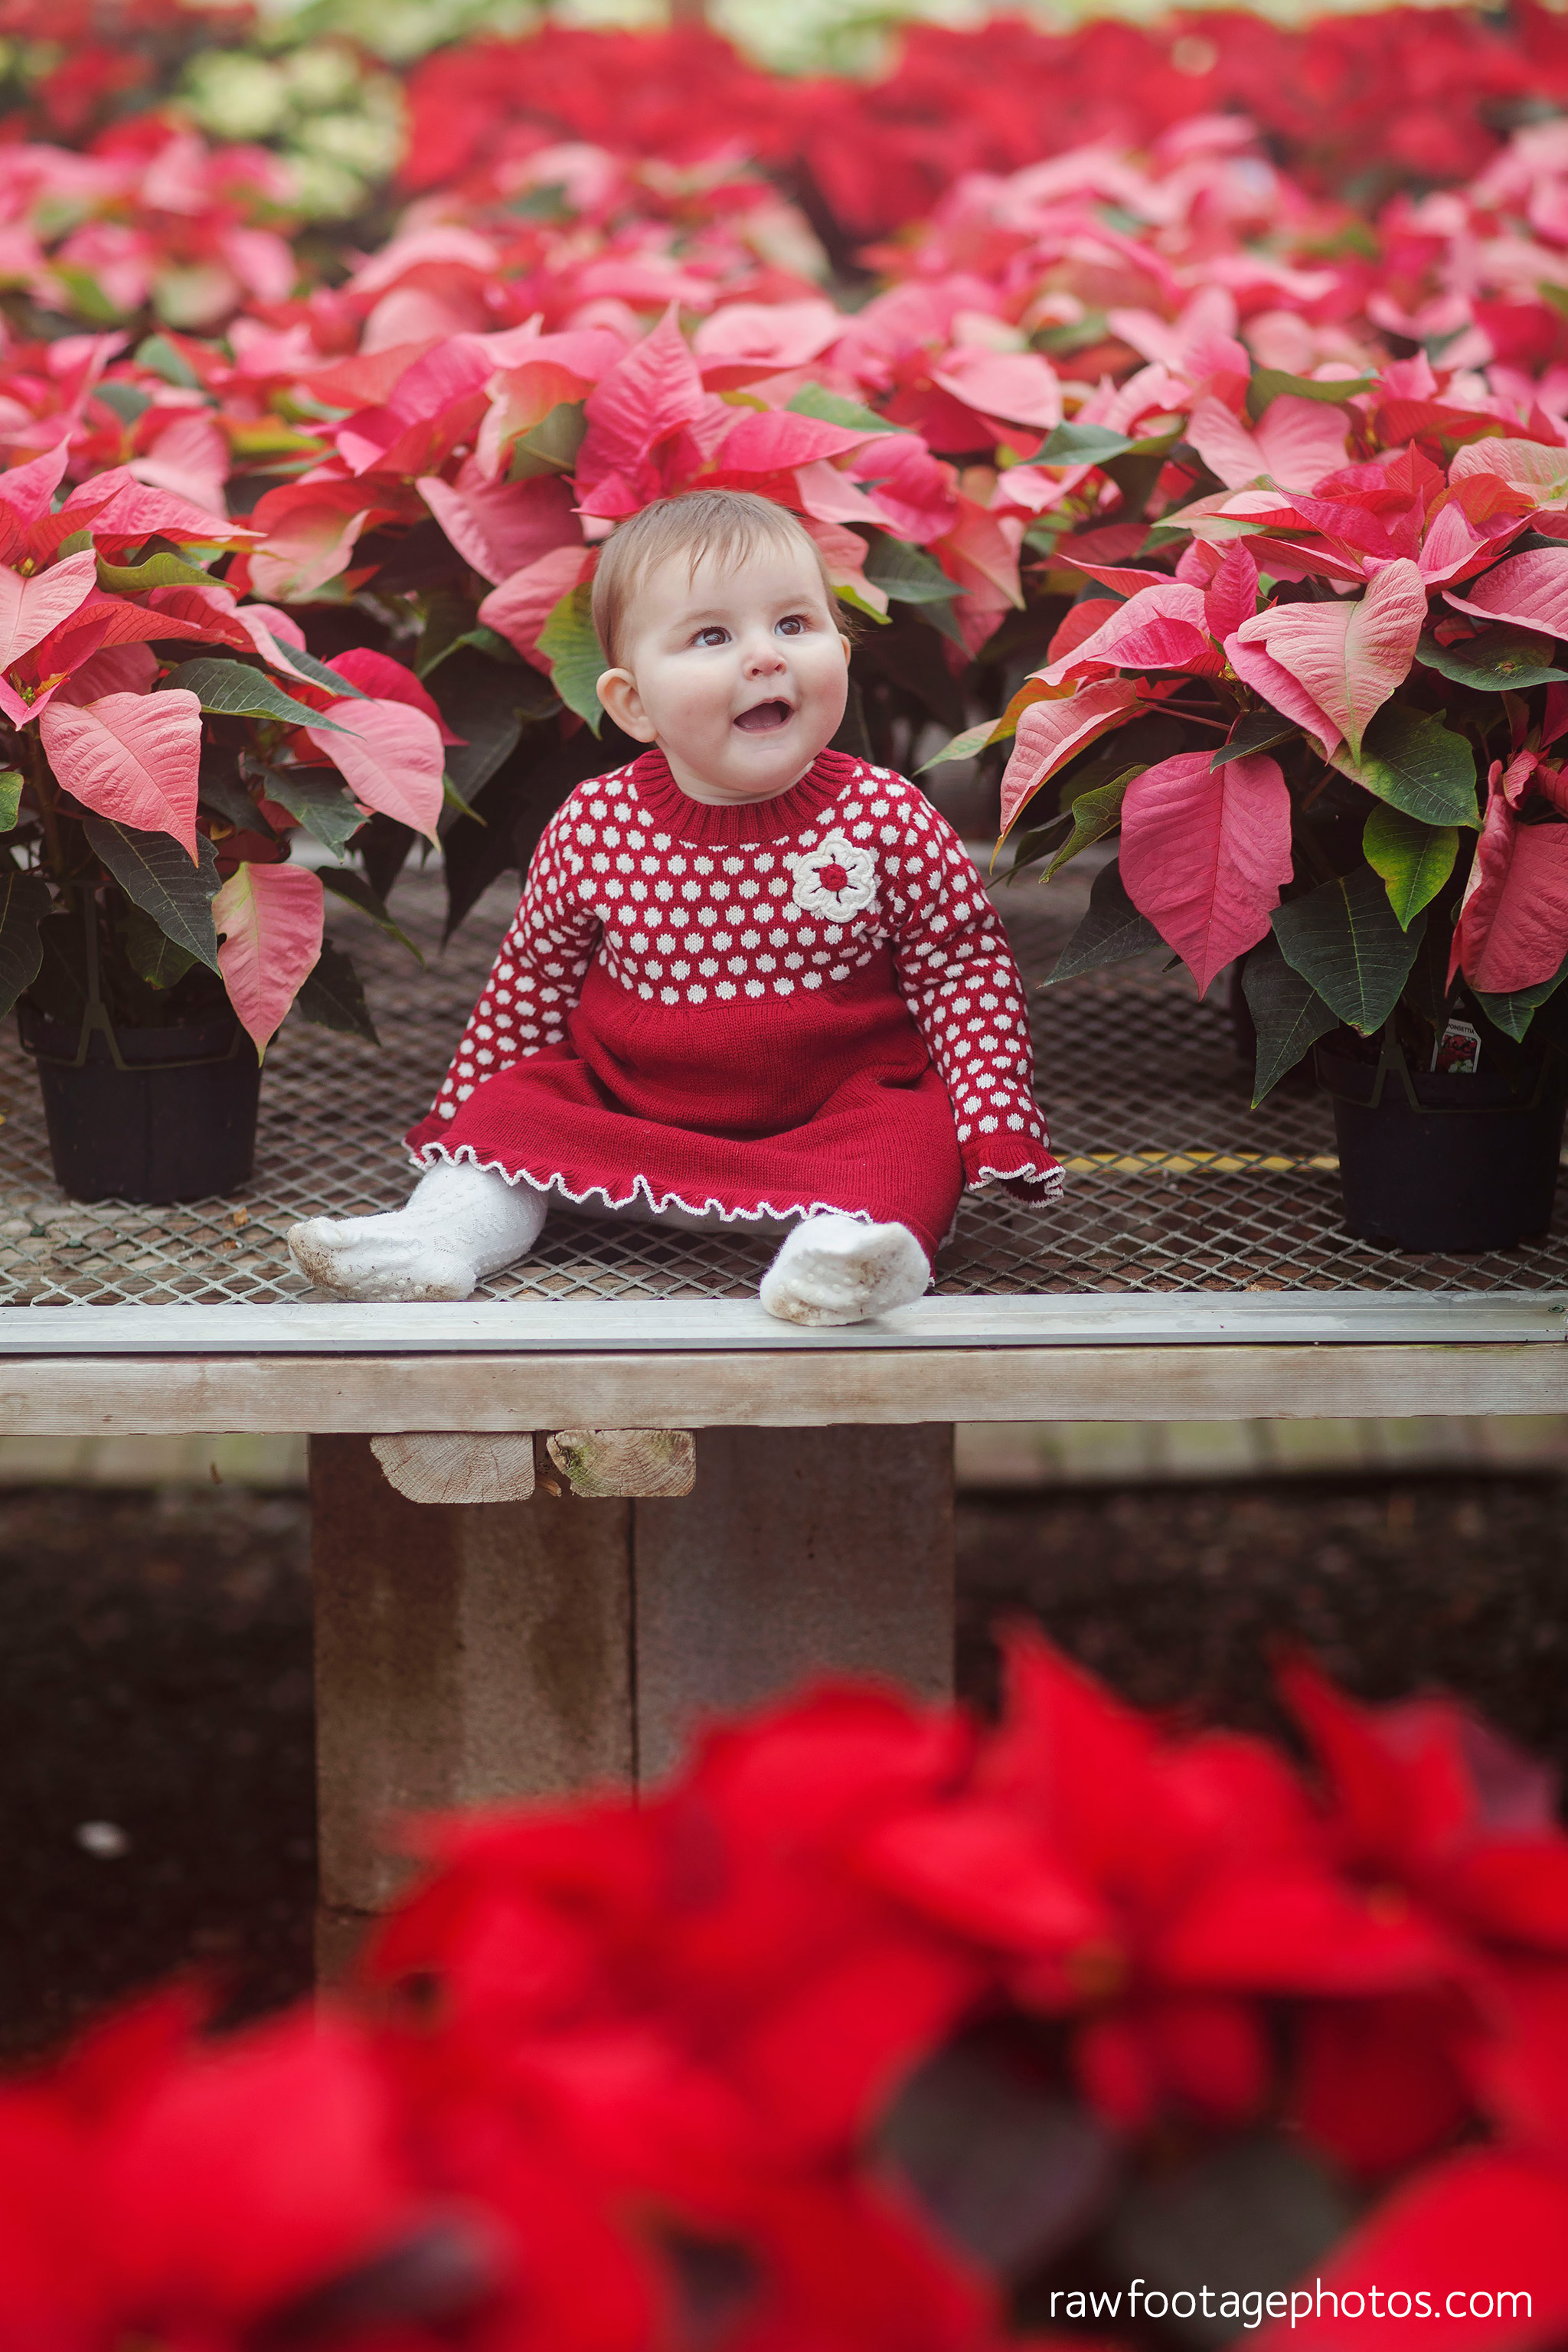 london_ontario_family_session_greenhouse-train_bridge-baby_girl-dog-raw_footage_photography030.jpg